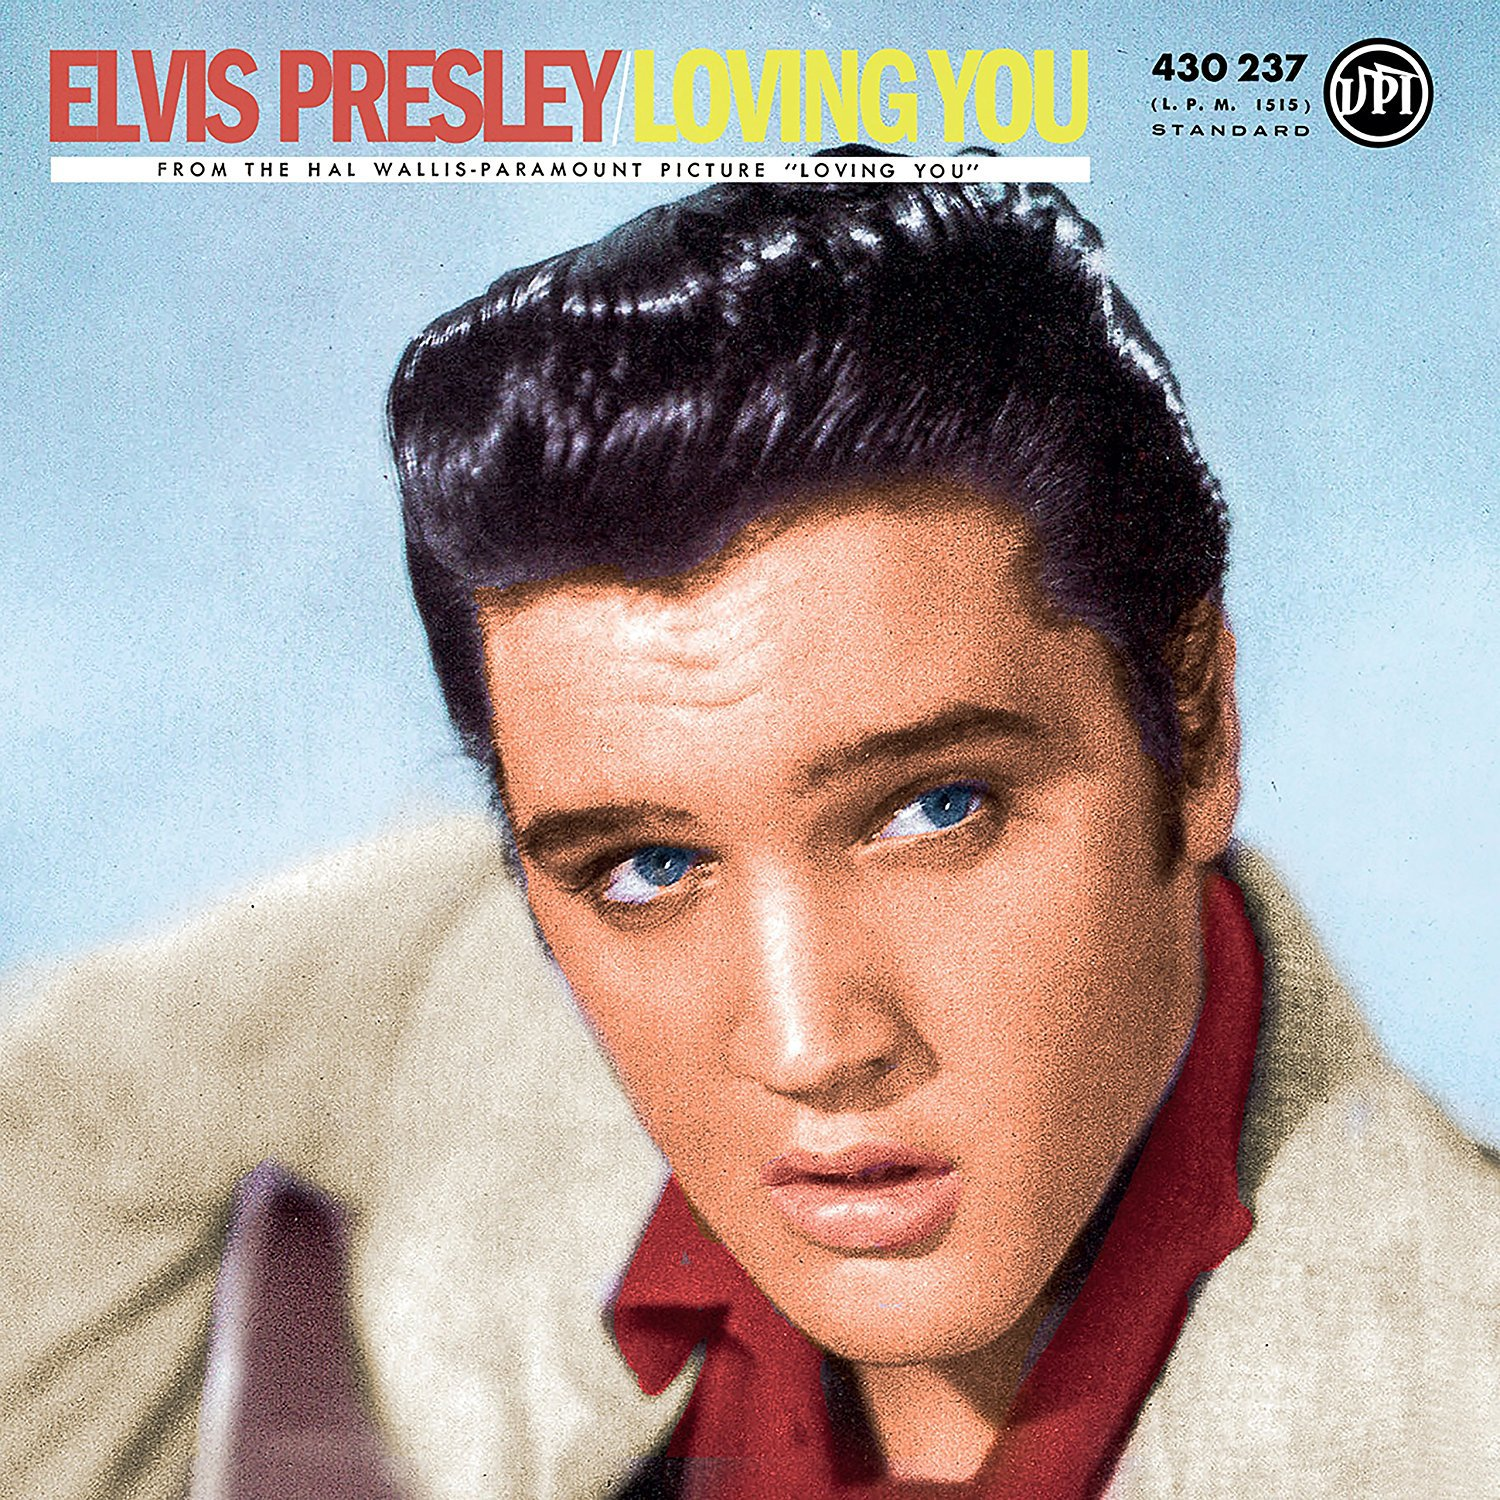 ELVIS PRESLEY - LOVING YOU (LP)